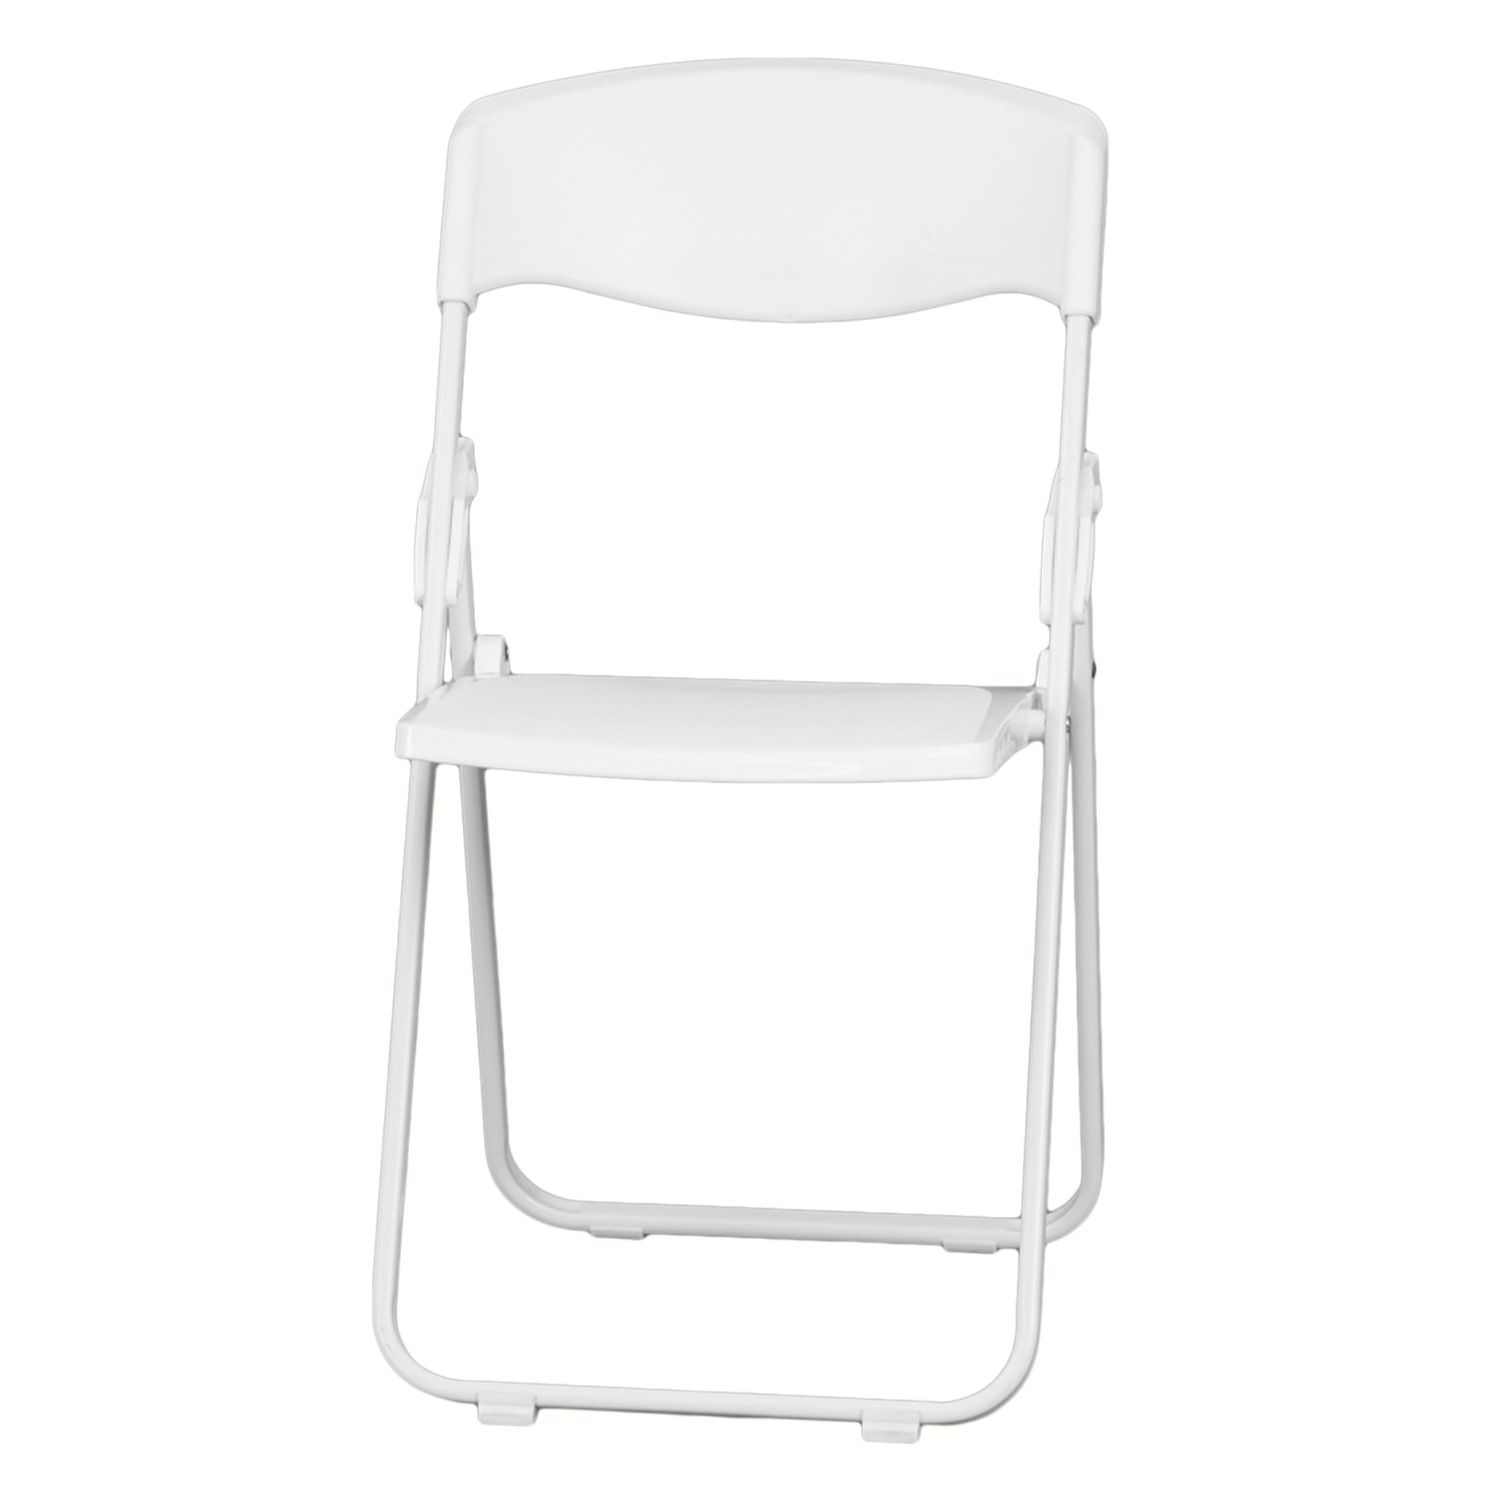 White plastic folding chairs - 360 Spin